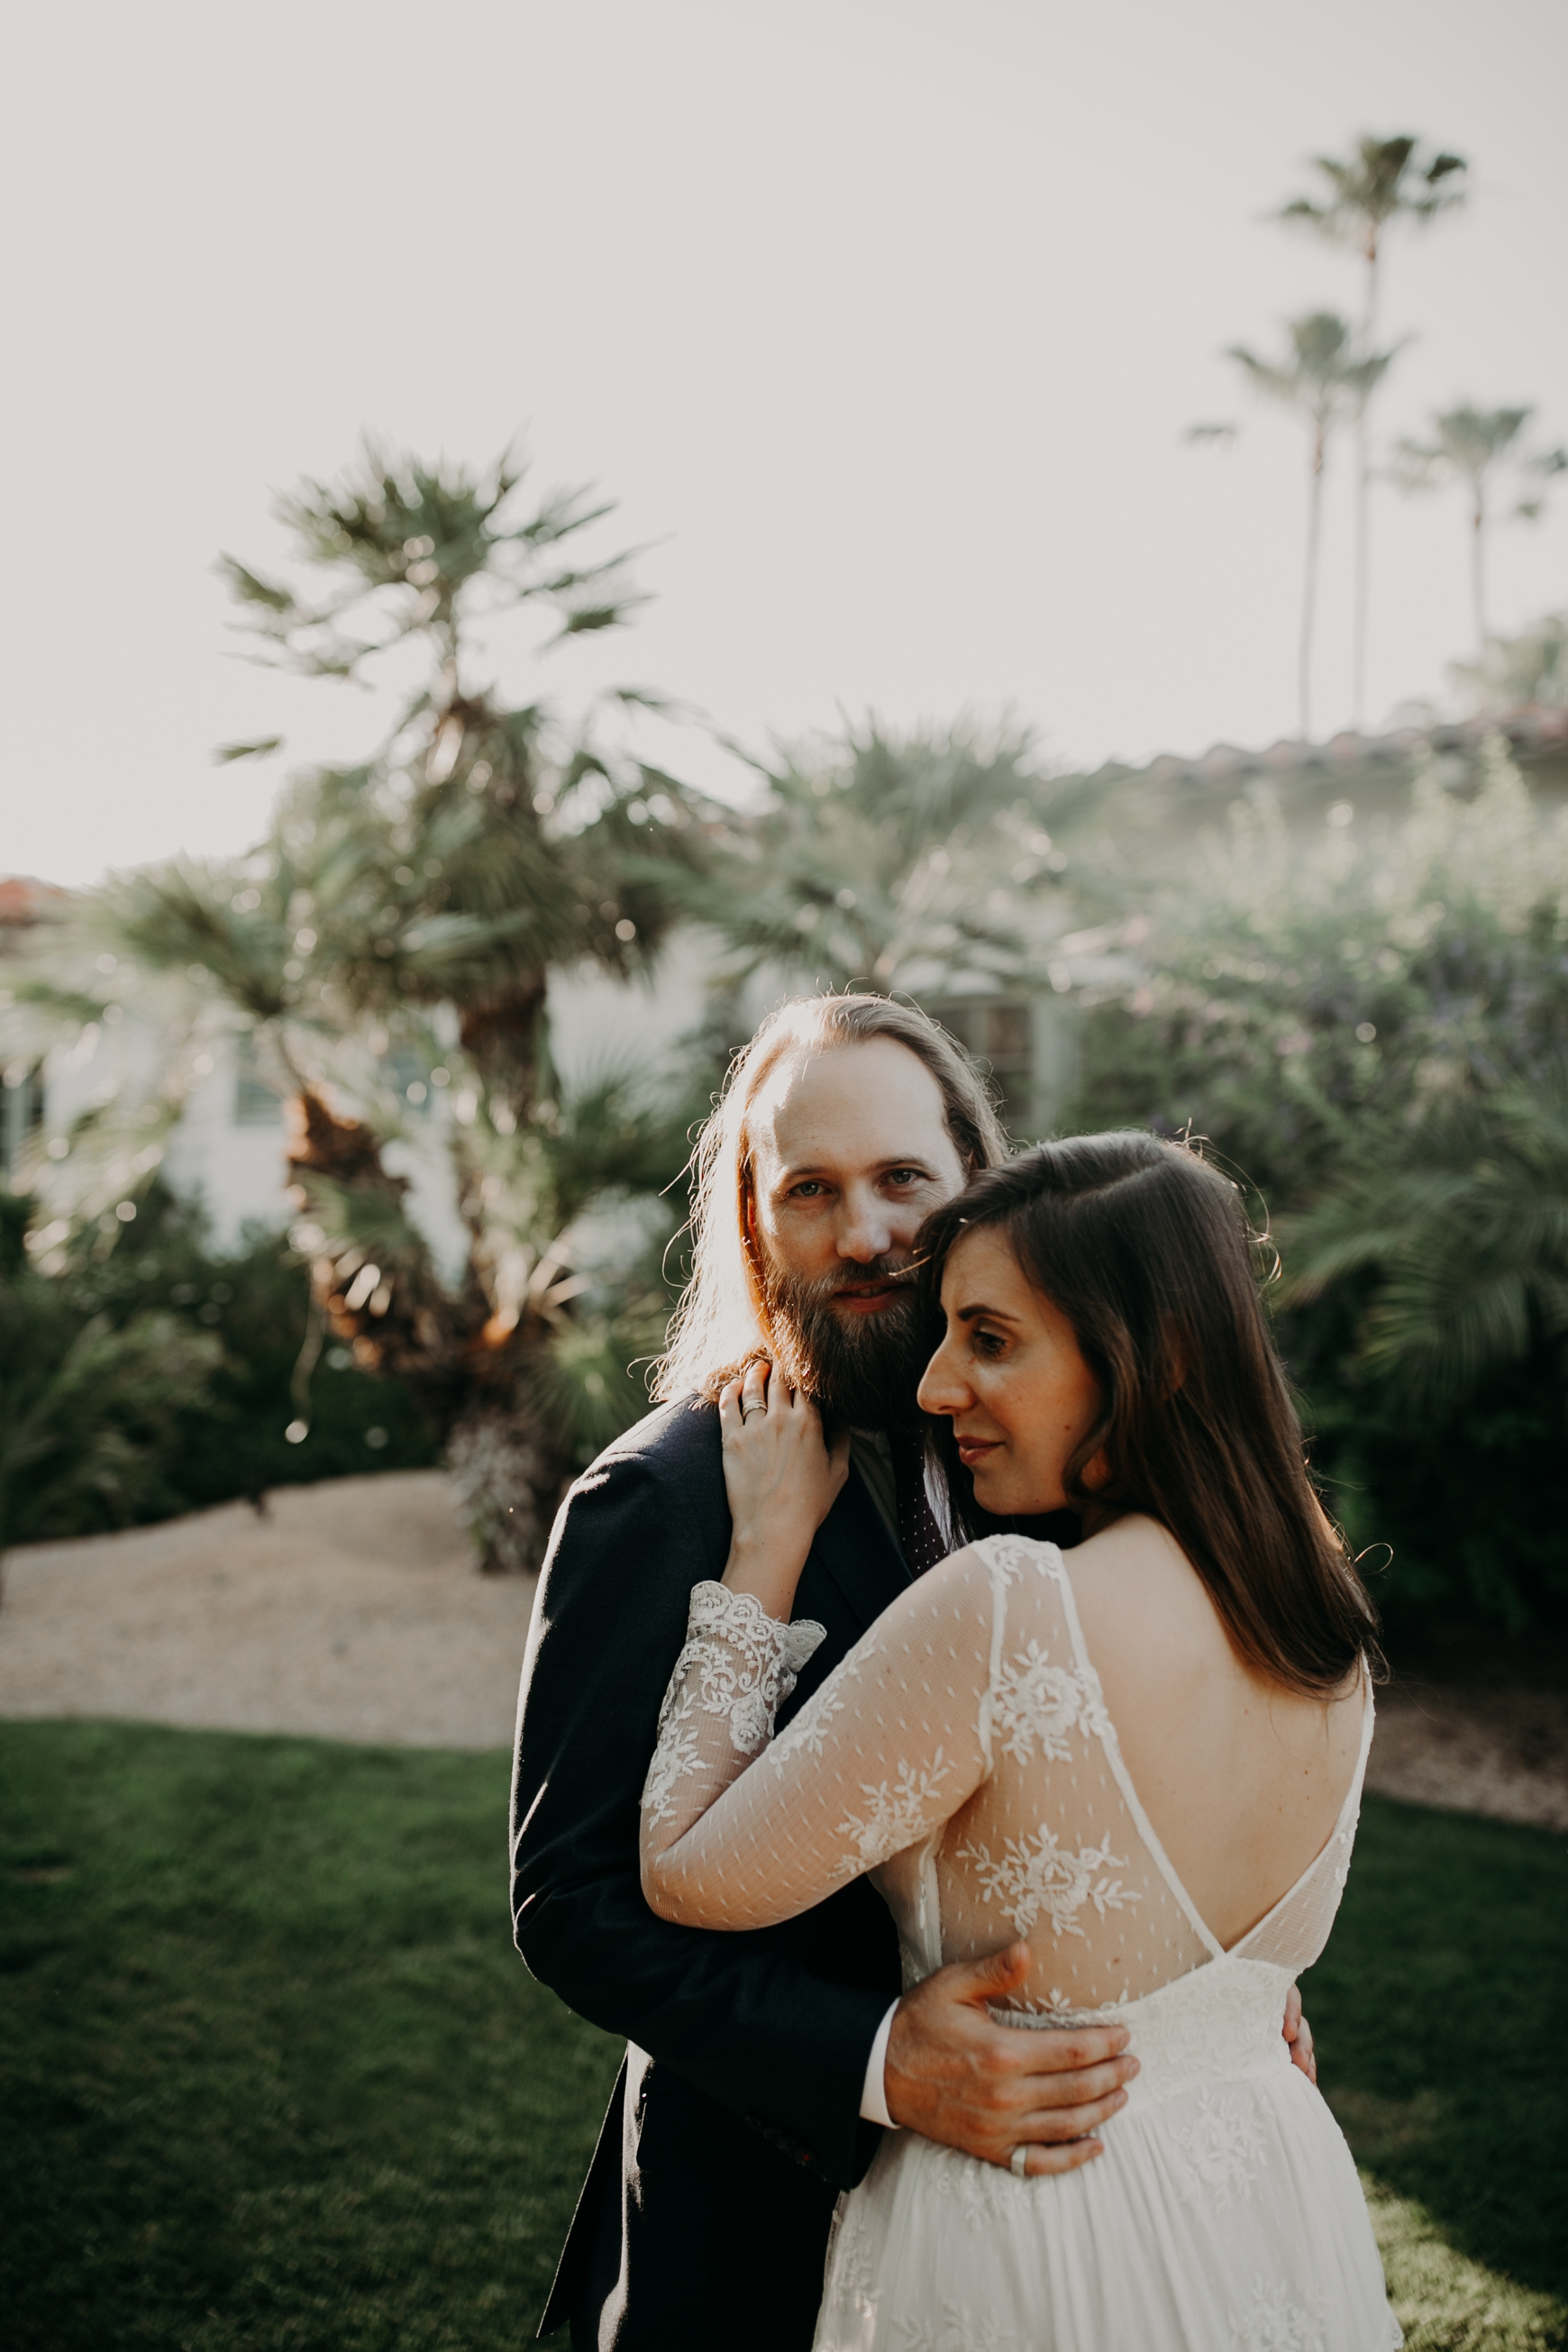 The Colony Palms Hotel Palm Springs Wedding Jaclyn & Tyson Emily Magers Photography-365.jpg